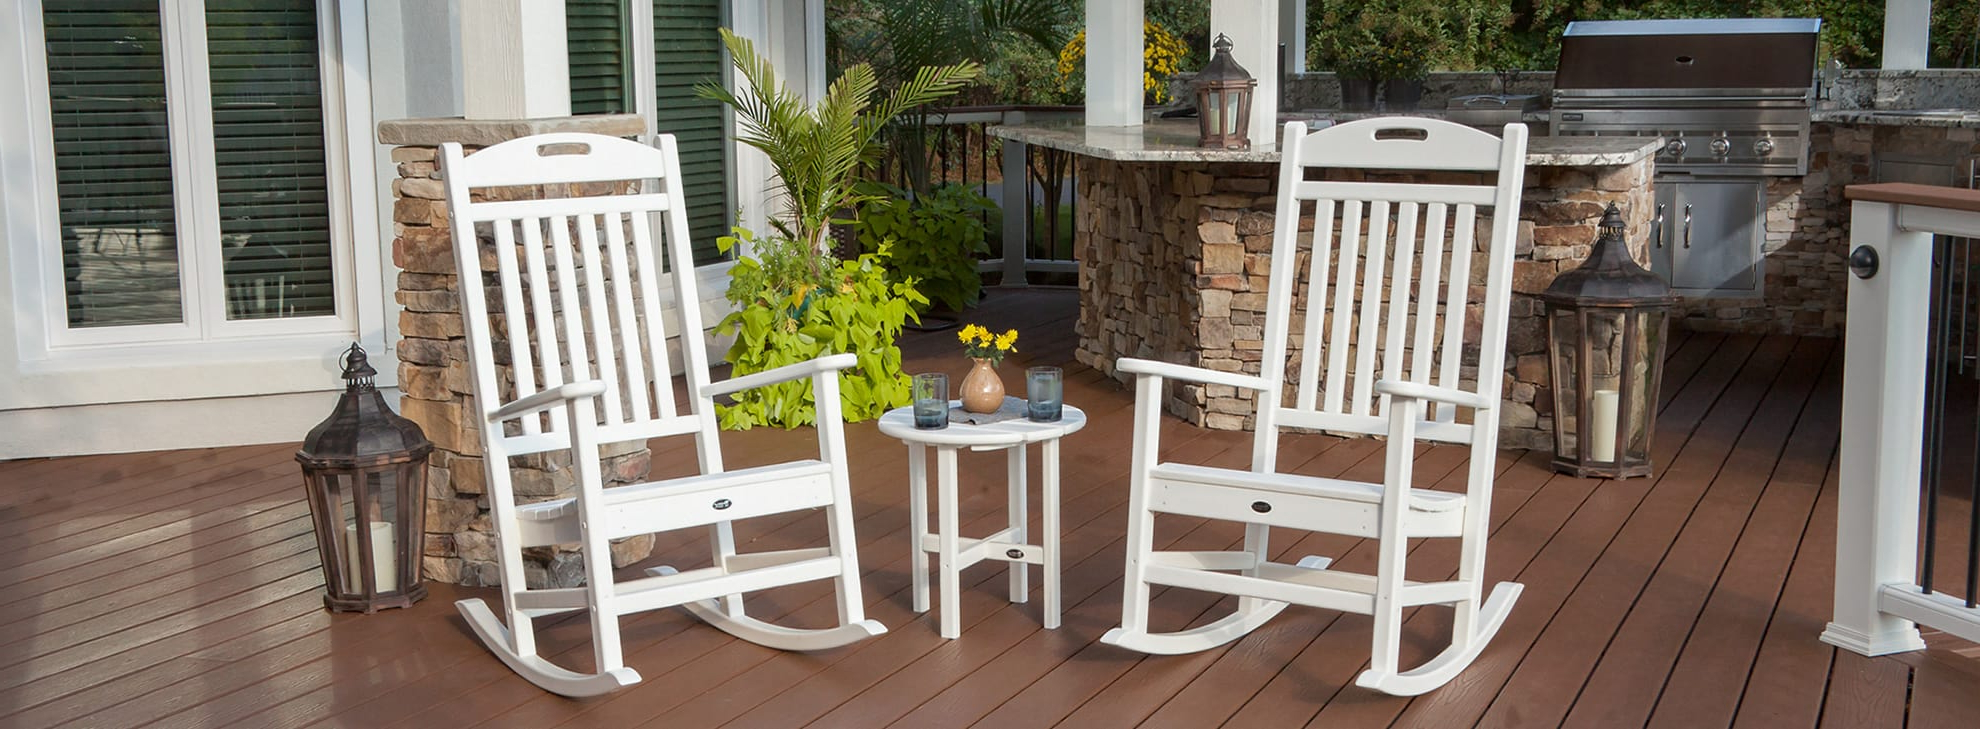 Easy Outdoor Rocking Lounge Chairs Within Well Known Outdoor Composite Furnituretype (Gallery 14 of 25)